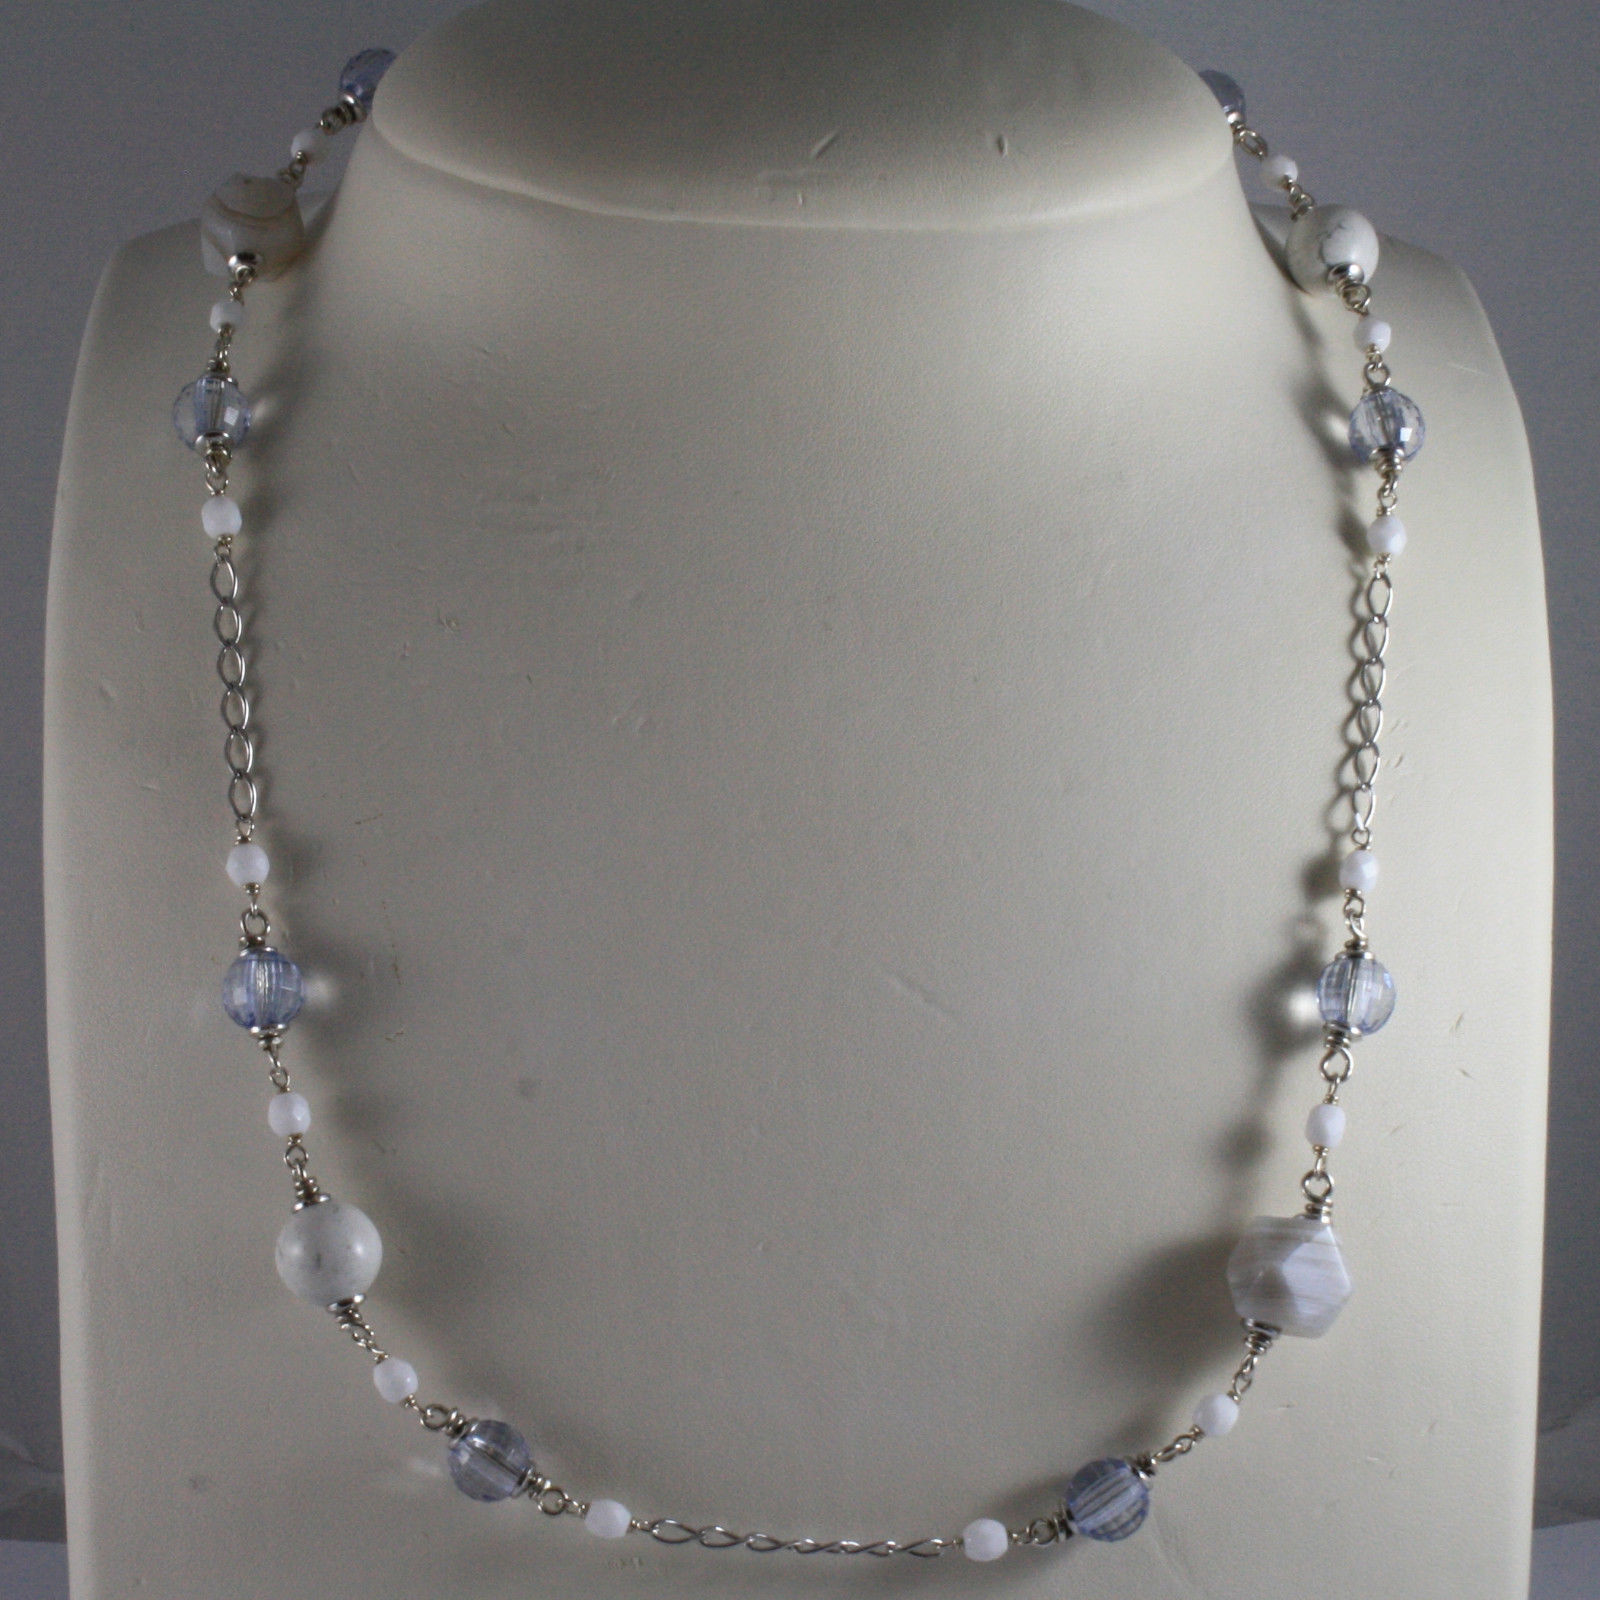 .925 SILVER RHODIUM NECKLACE WITH BLUE CRISTALS, WHITE AGATE, HOWLITE CHALCEDONY